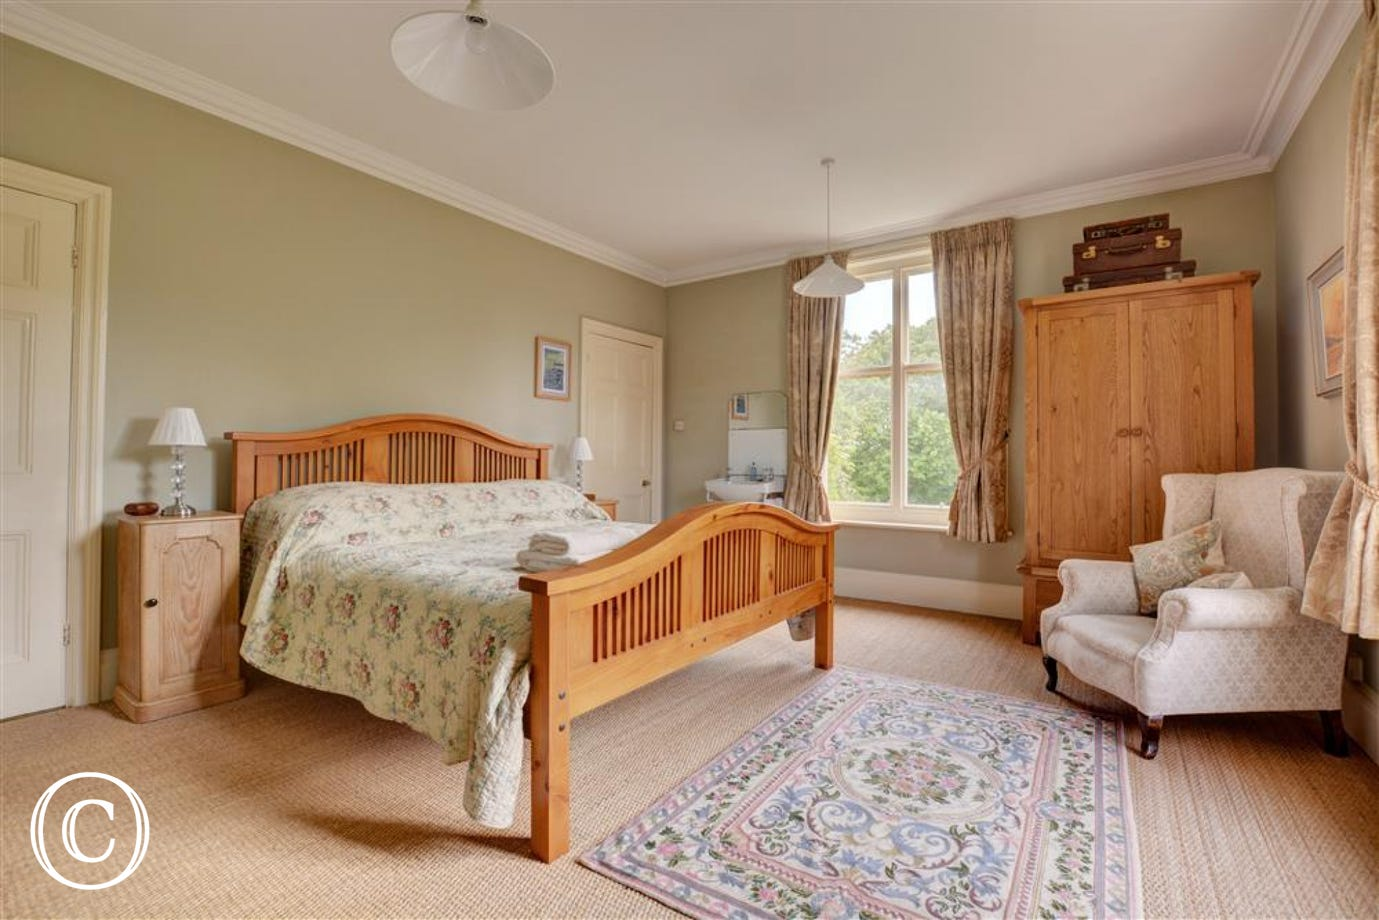 Bedroom one is a stunning room with super king bed and an en-suite shower room